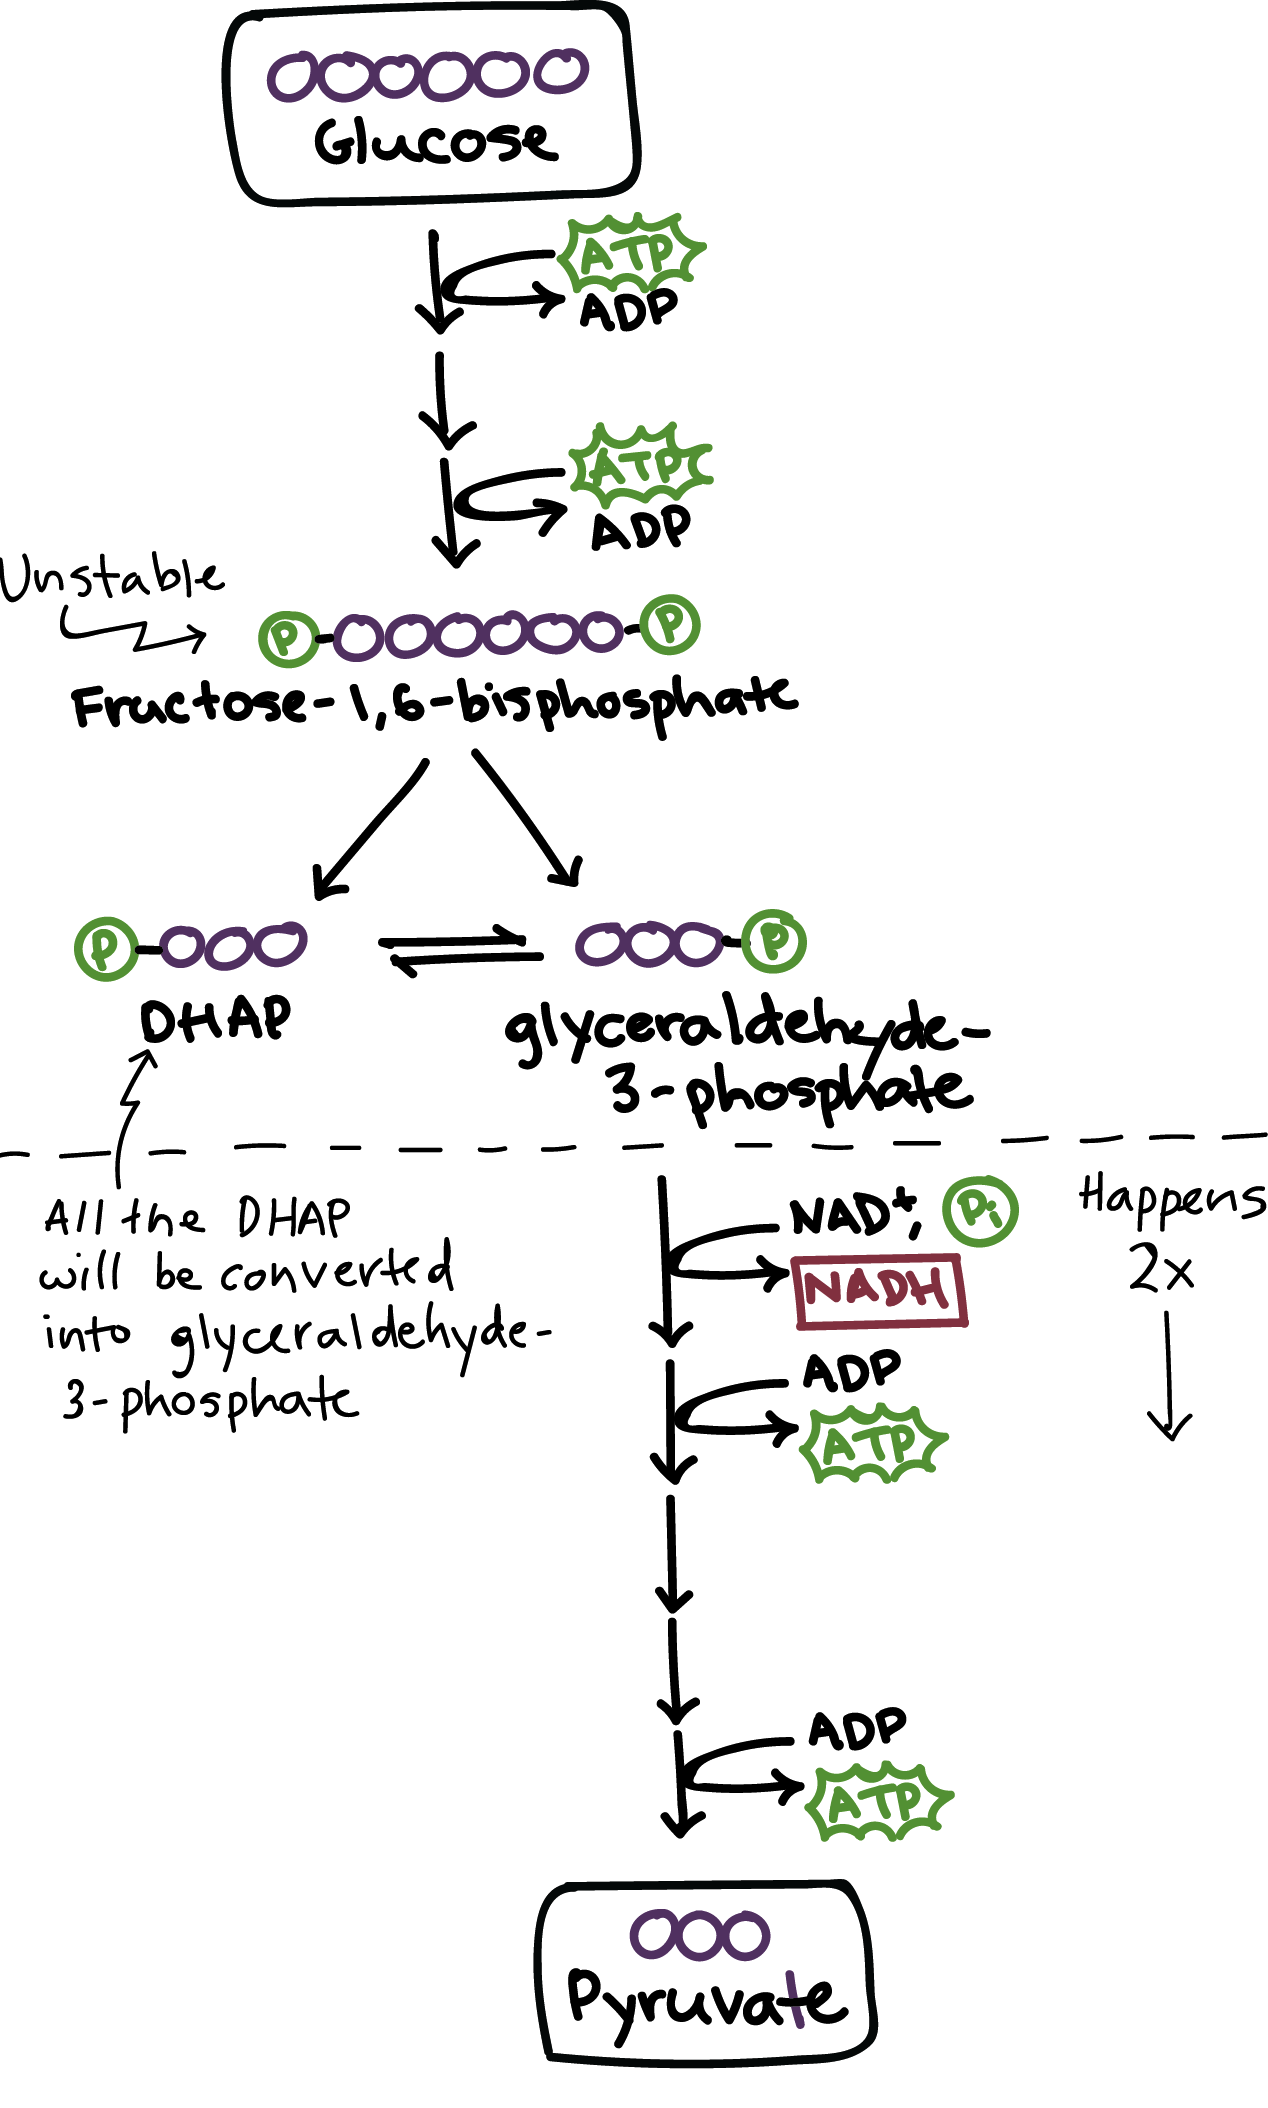 glycolysis   glycolysis   cellular respiration   biology   khan    simplified diagram of glycolysis